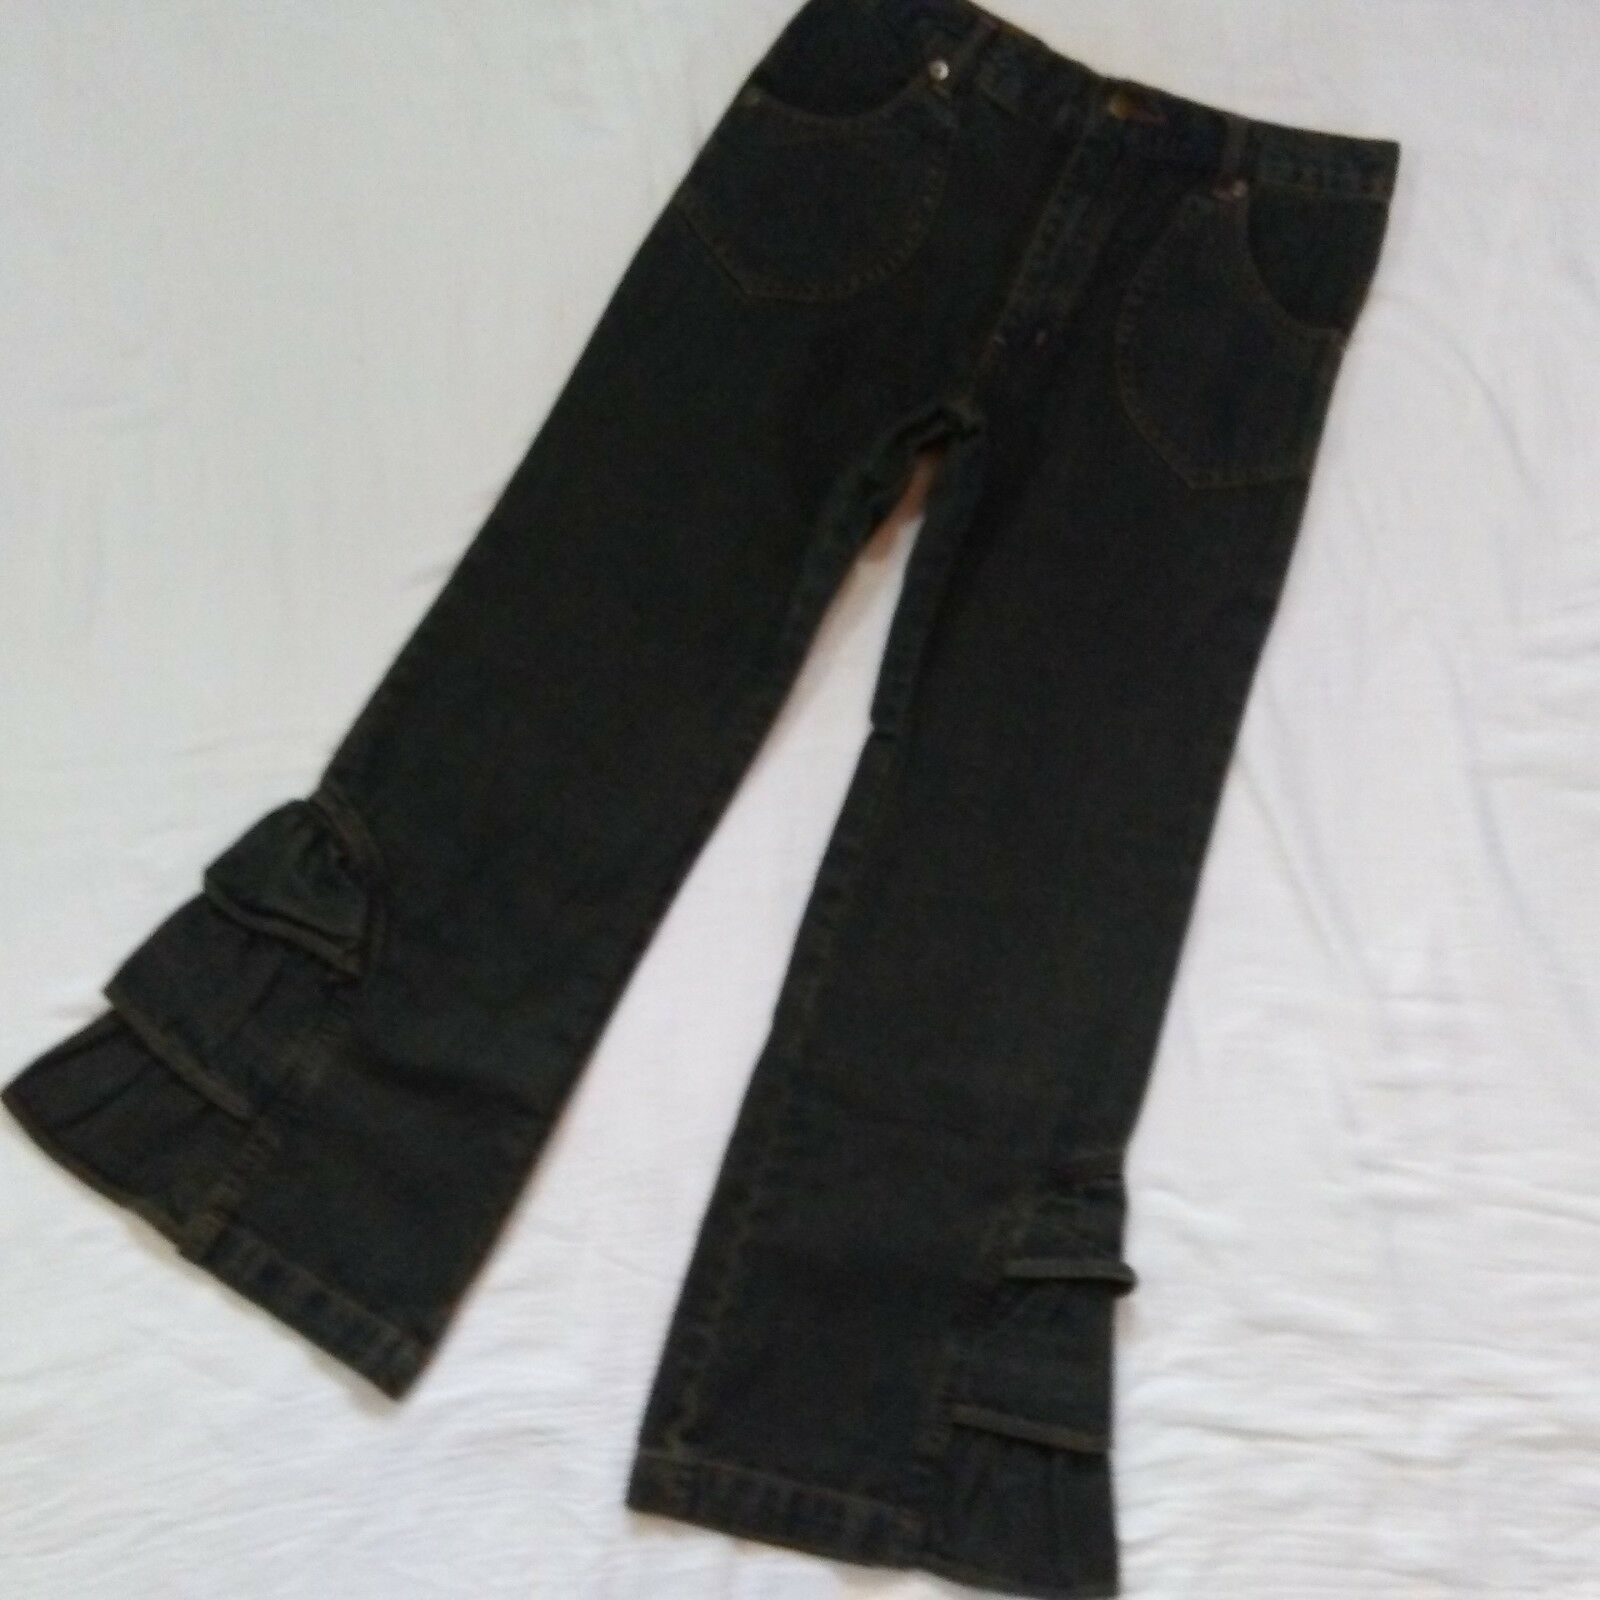 Womans Jeans Story Ruffle Flair Dark Wash Jeans  Petite Size 6